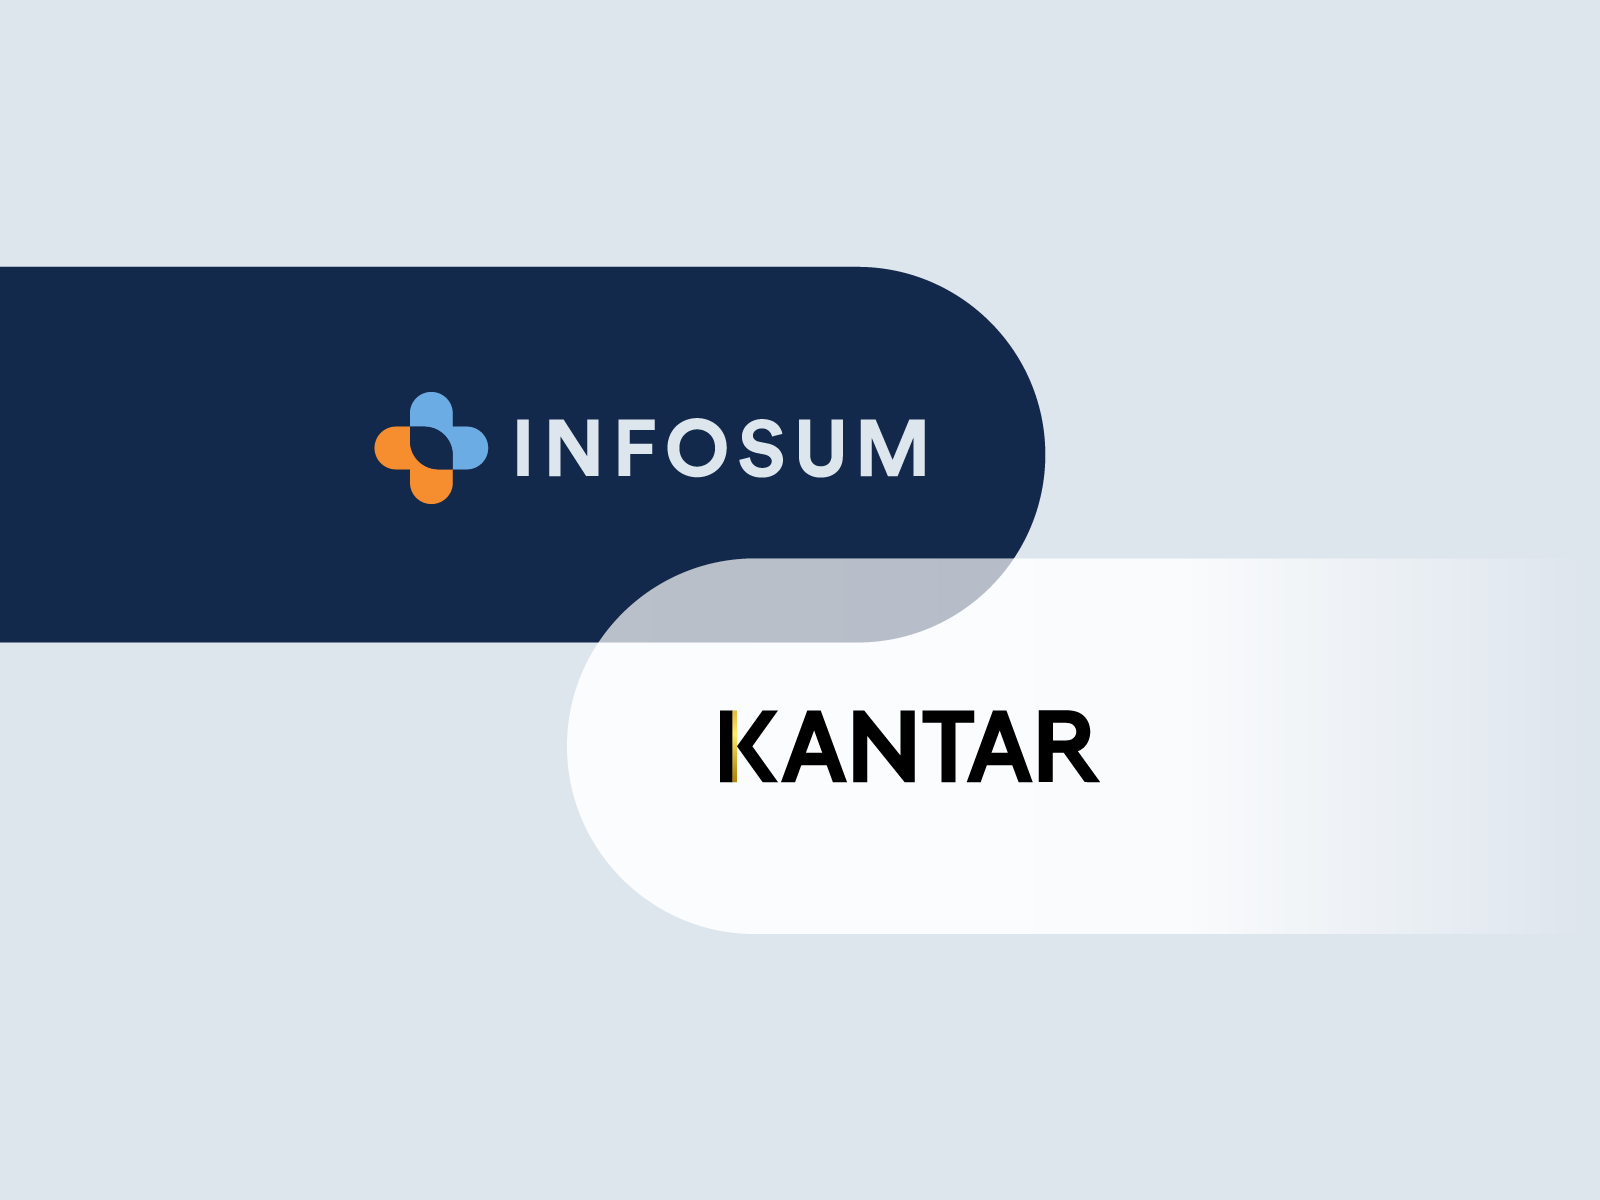 InfoSum and Kantar partner to unlock the value of first-party data